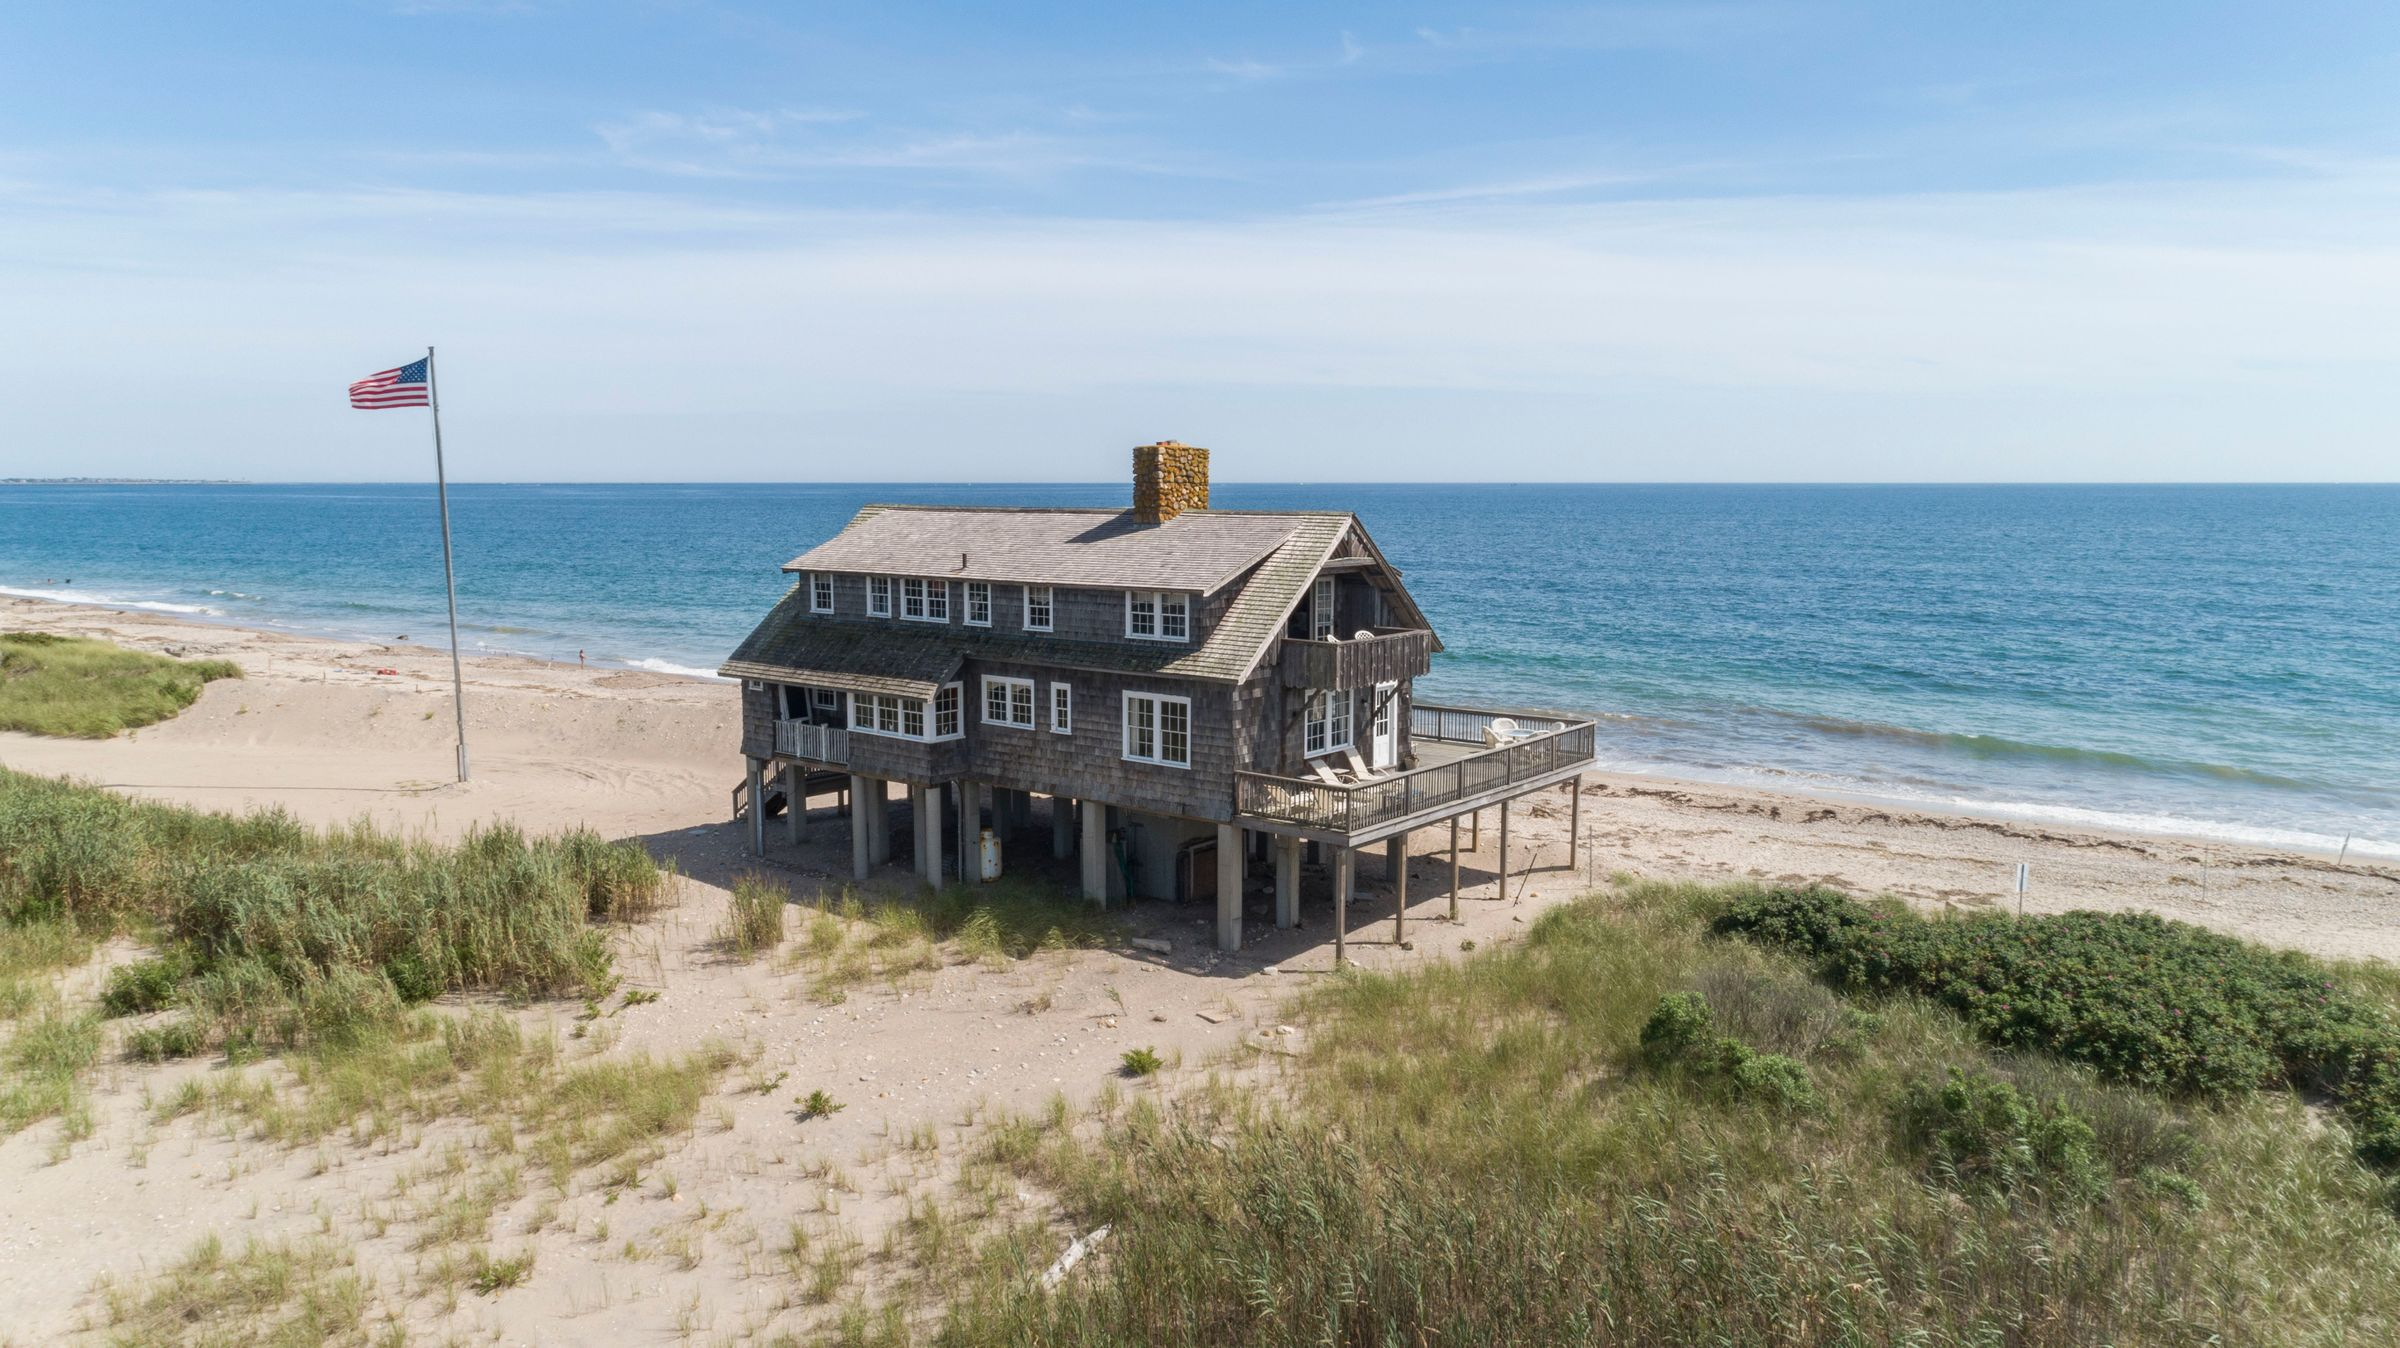 SAVE THIS OLD HOUSE: ONE OF THE LAST BROWNING COTTAGES ON MATUNUCK BEACH